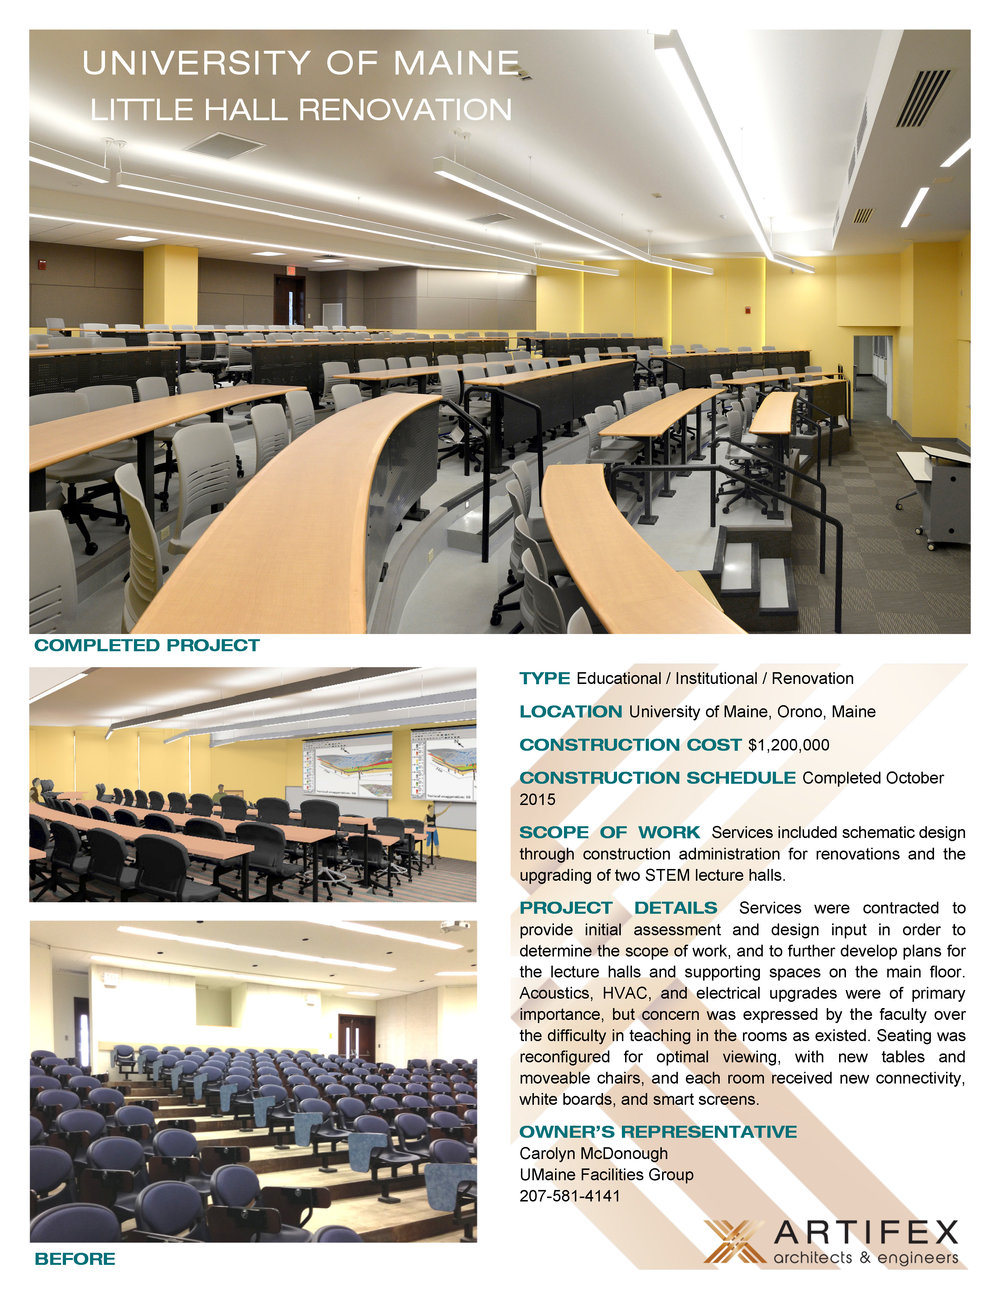 UMaine Little Hall - RENOVATION - EDUCATION - sell sheet.jpg